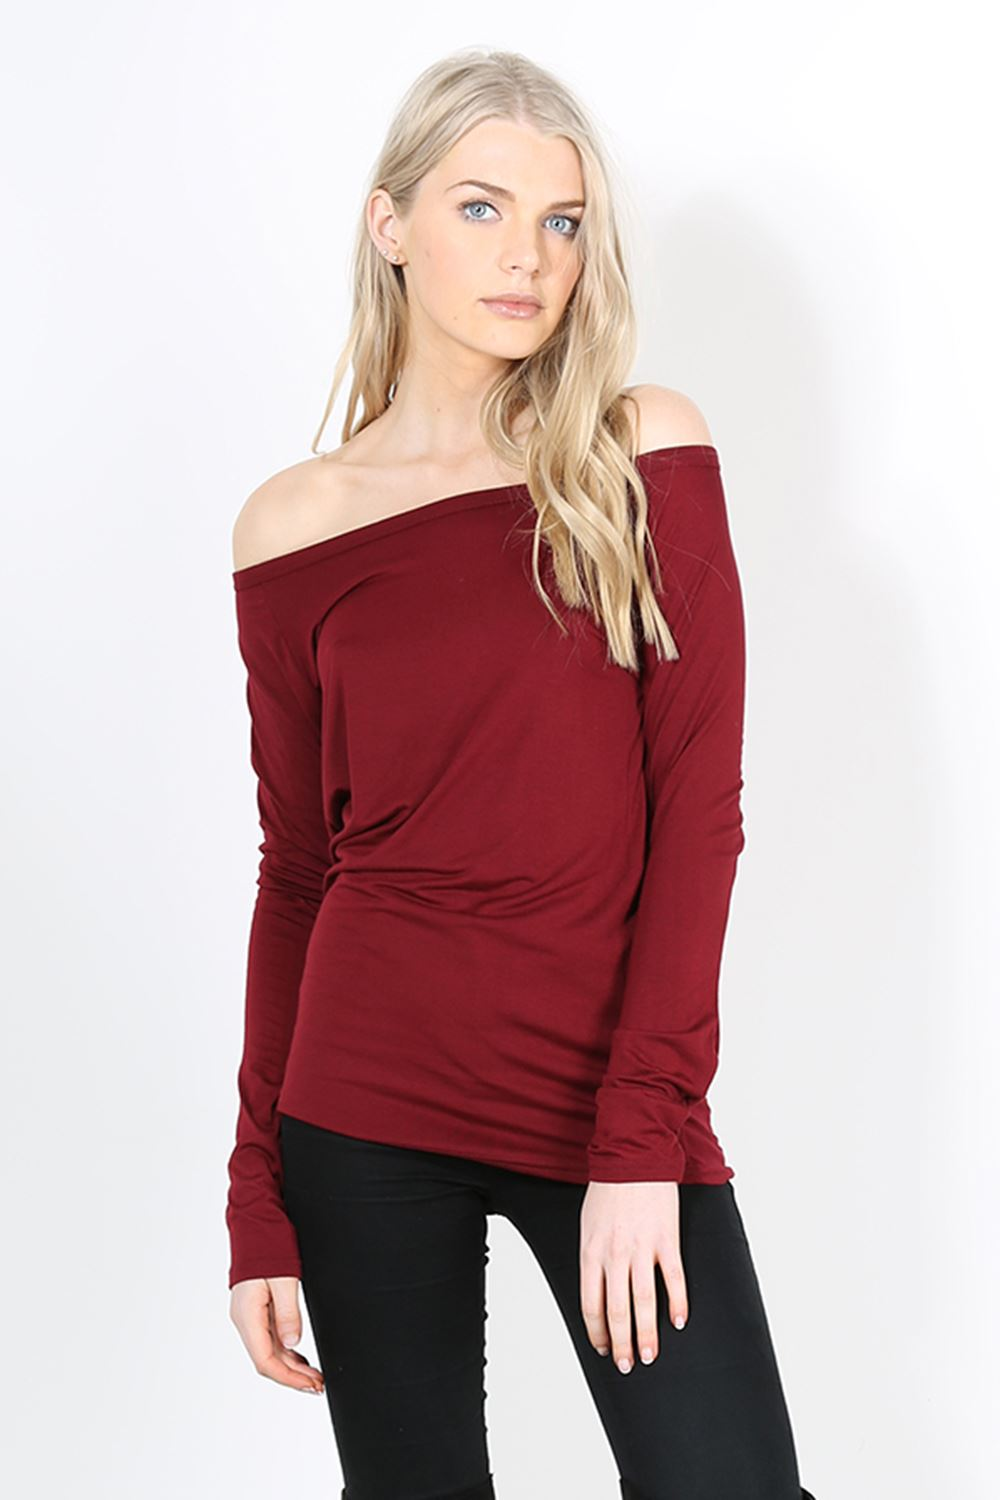 Womens Long Sleeve Tops amp TShirts  MampS